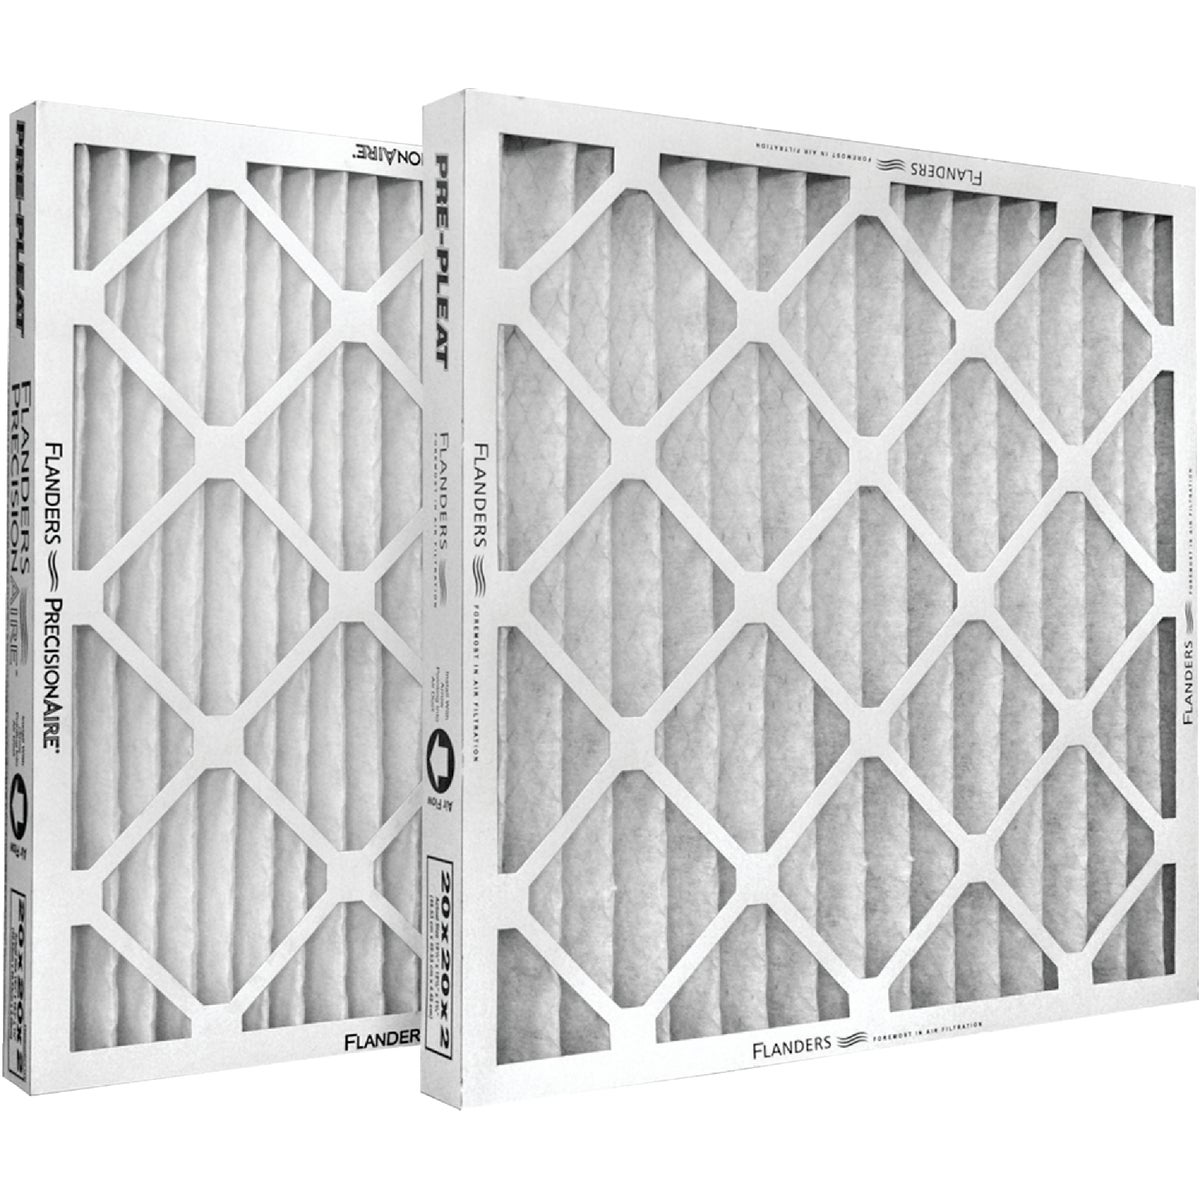 16X20X2 FURNACE FILTER - 80055.021620 by Flanders Corp